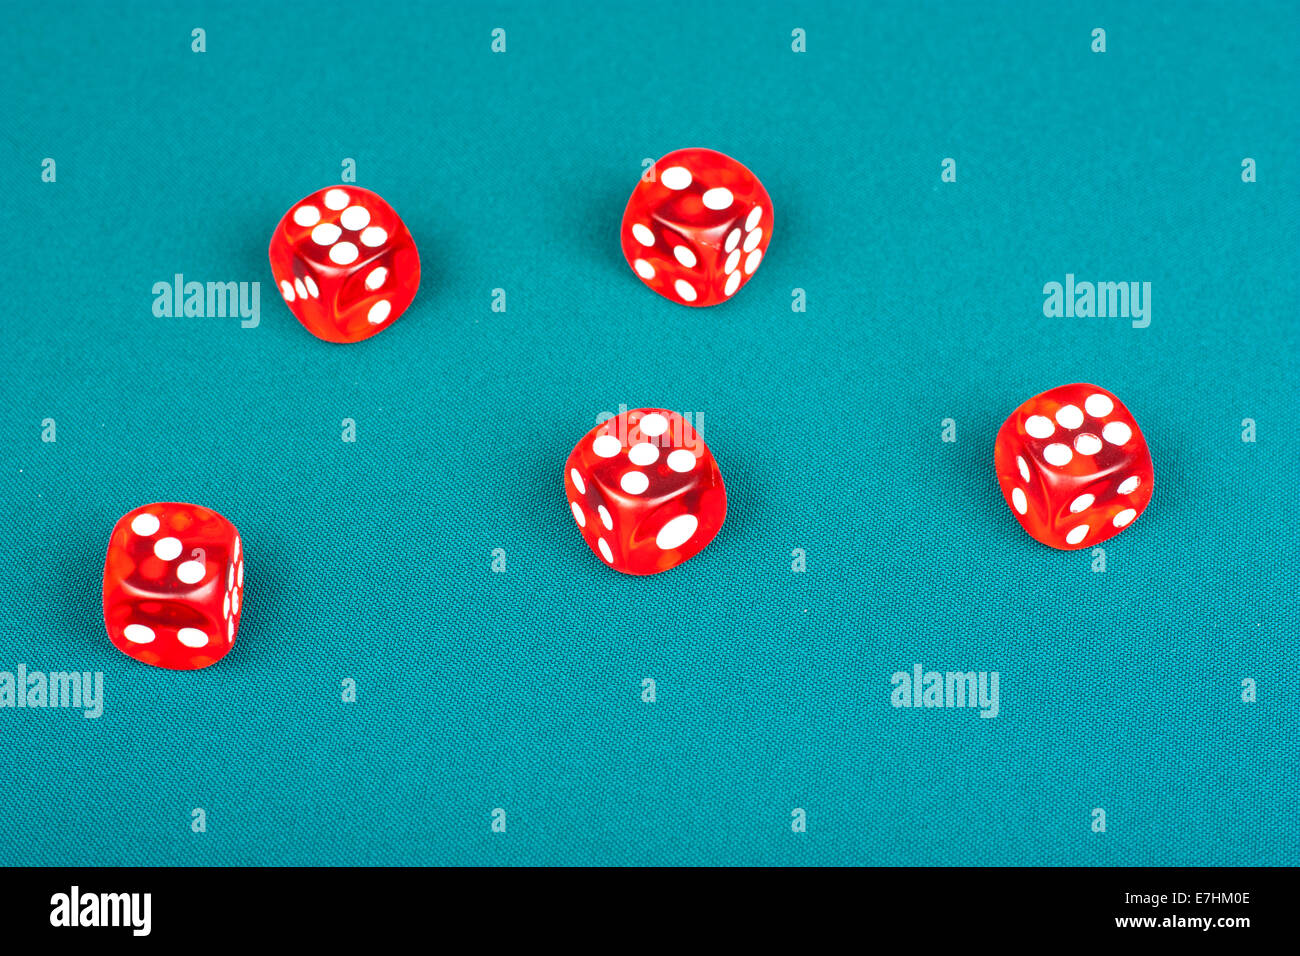 Poker table background - Five Dice On The Green Poker Table Background